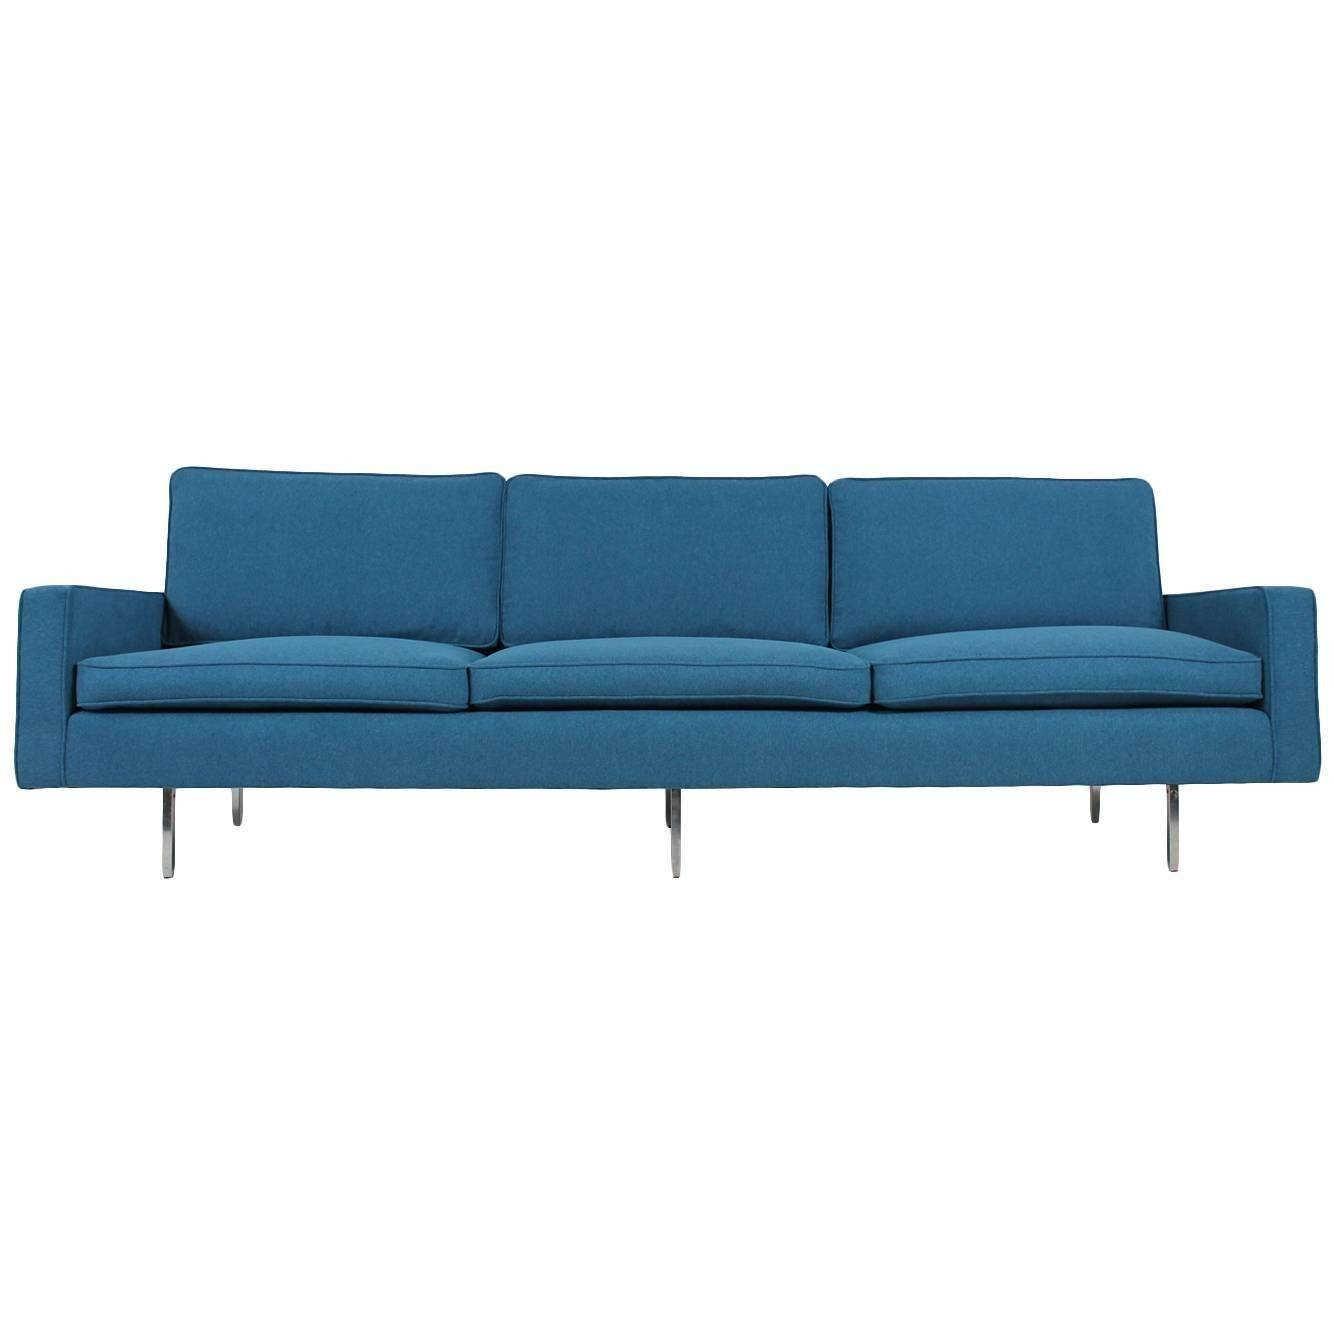 Beautiful Mid Century Florence Knoll Sofa Mod (View 4 of 15)